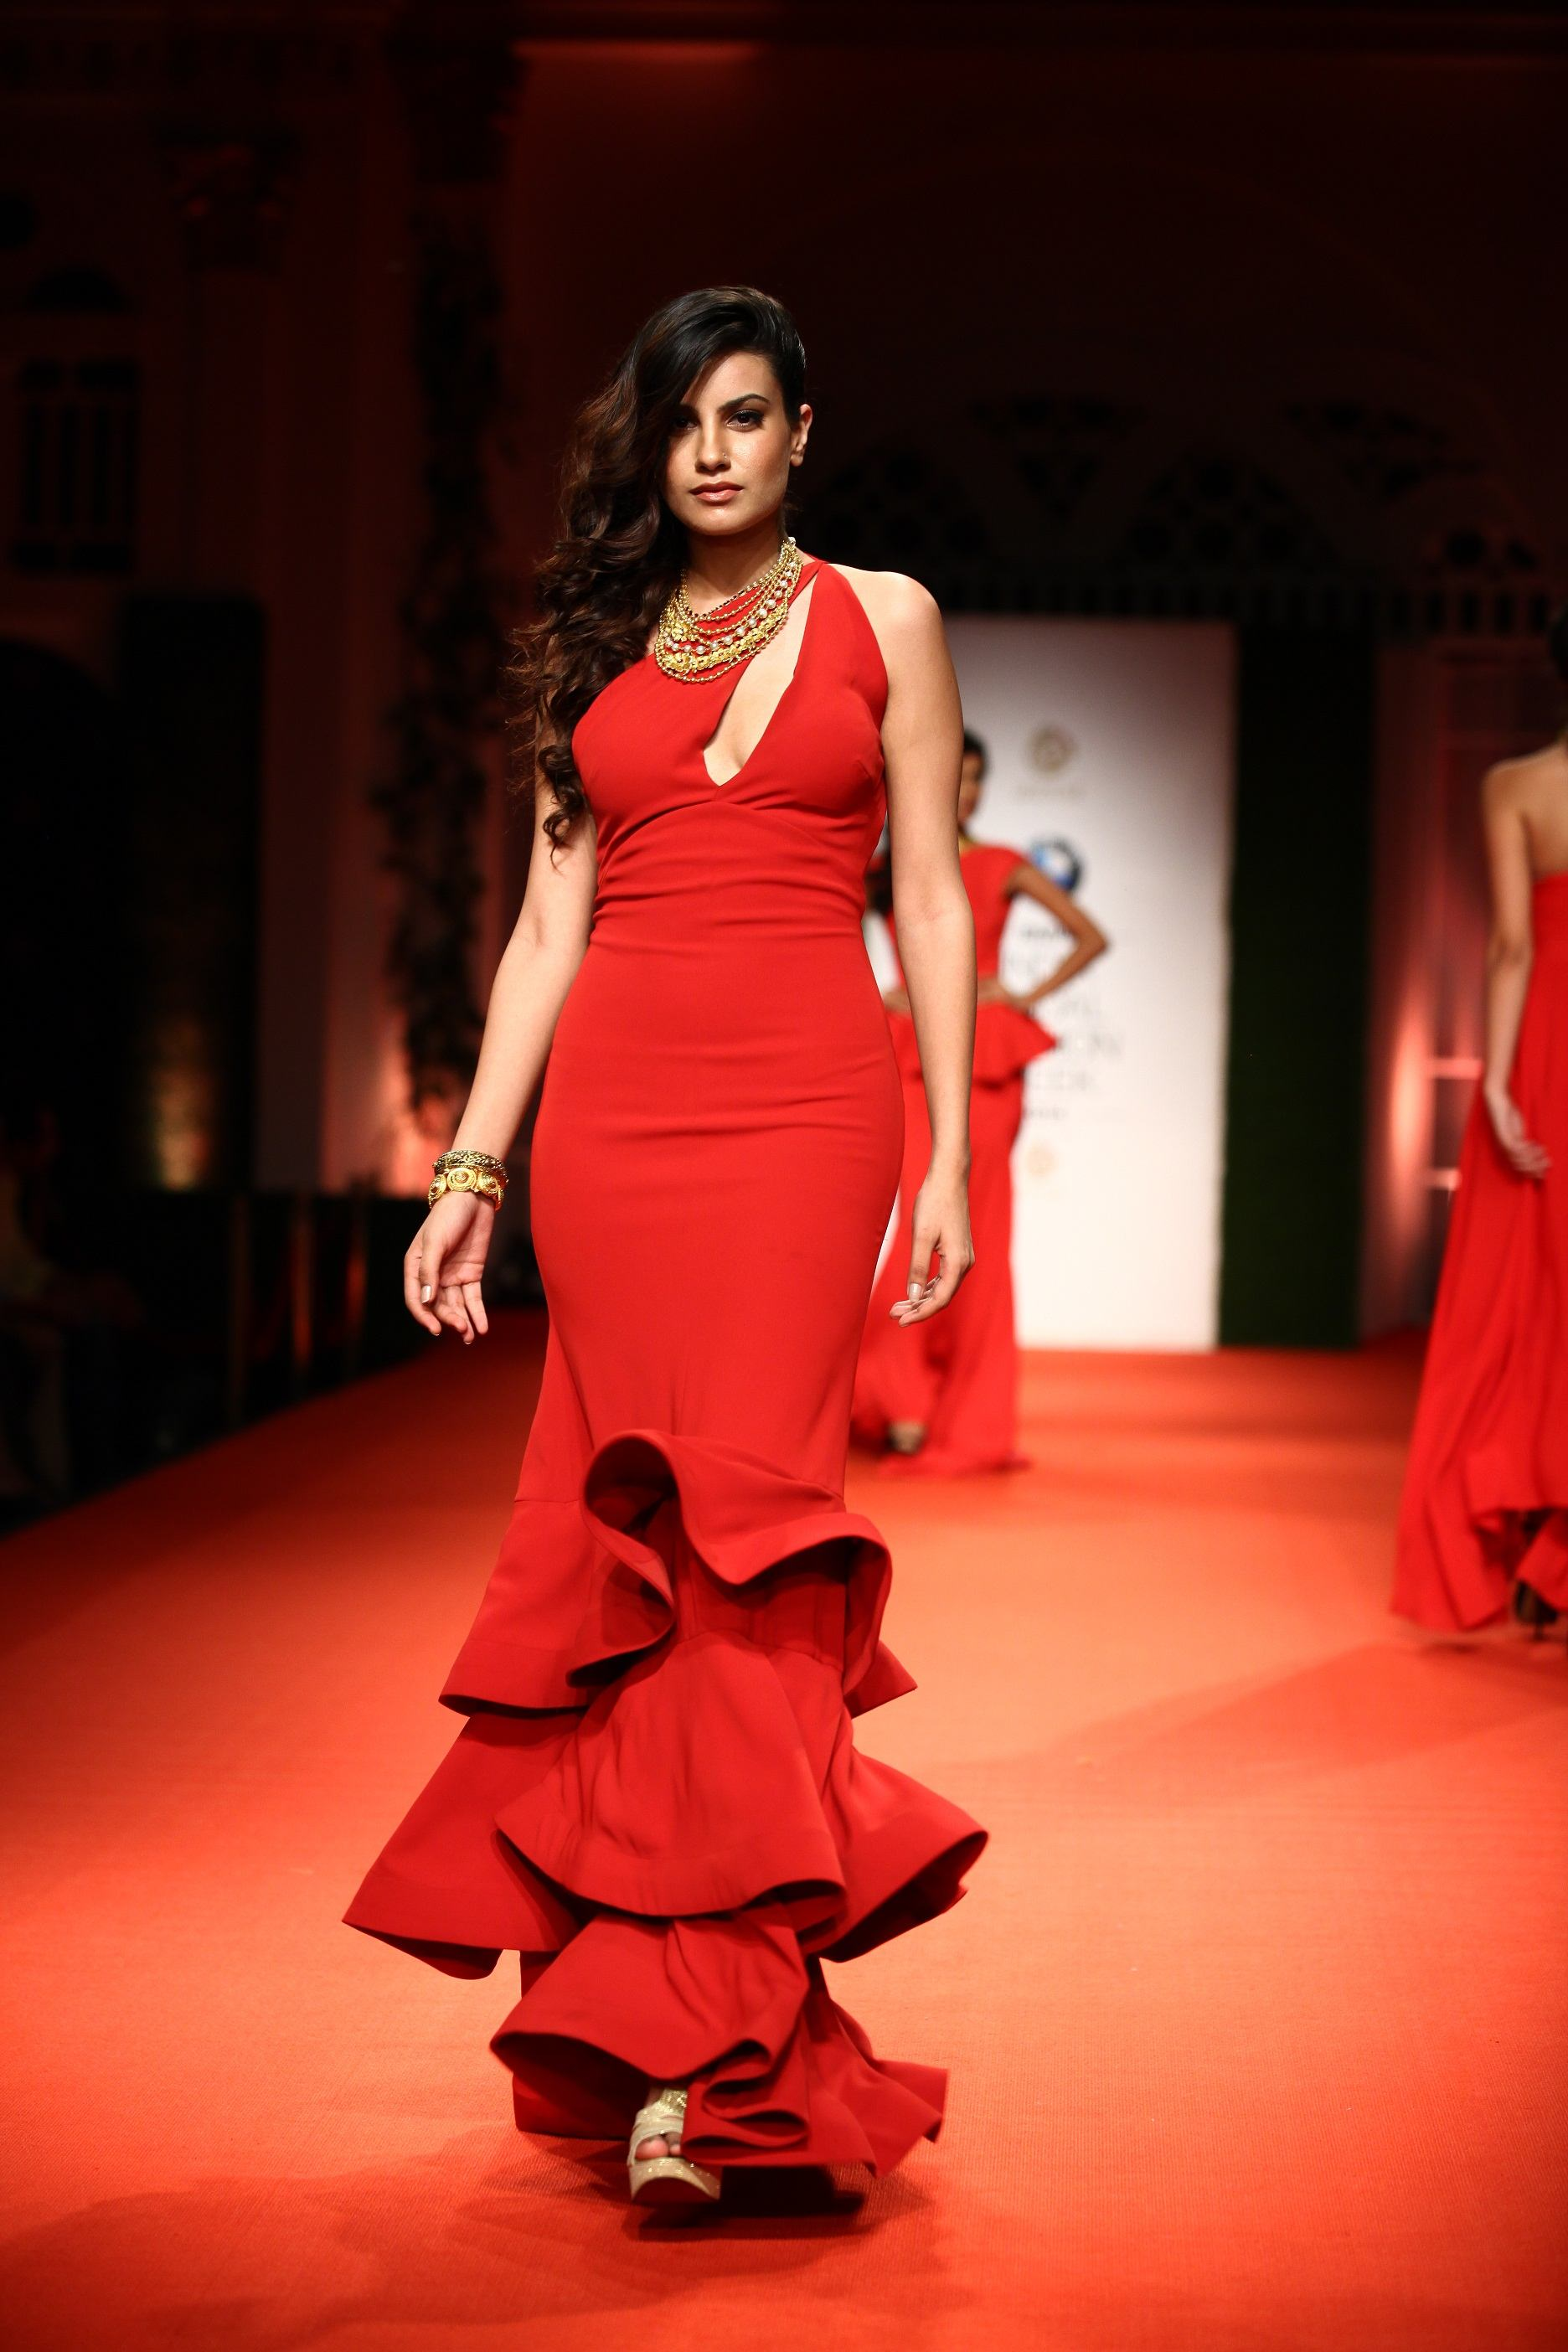 Azva Presents Gold Jewellery in its Most Elegant and Glamourous Avatar at BMW India Bridal Fashion Week 2014 in association with AZVA at DLF Emporio (9).jpg